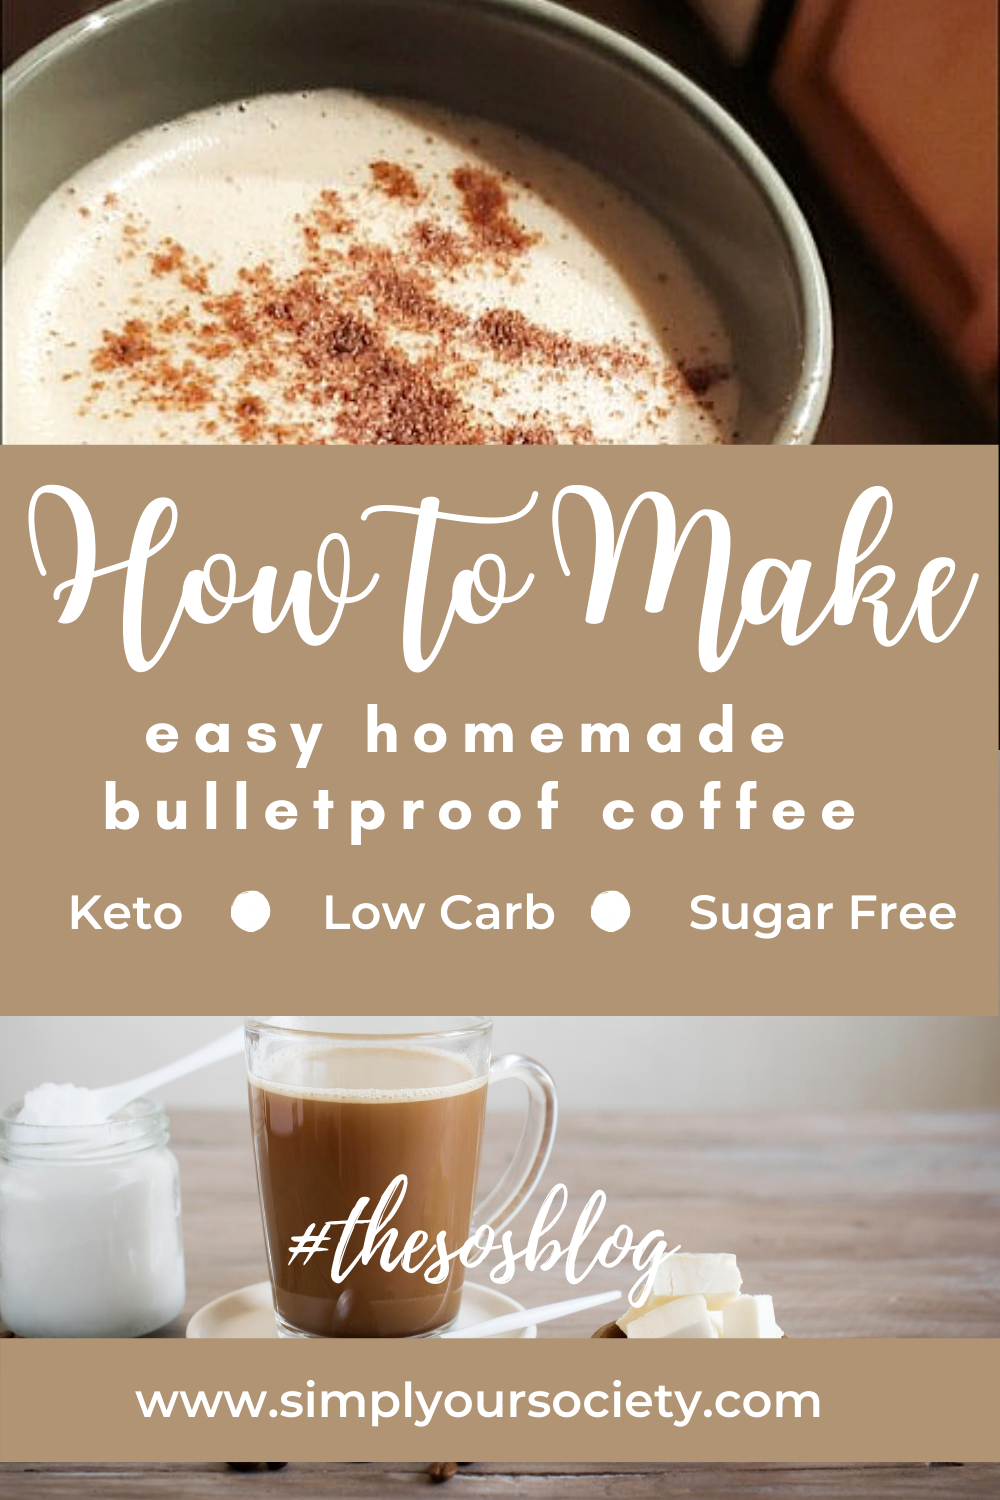 How To Make Easy Homemade Bulletproof Coffee Keto Low Carb Low Sugar Creamy Delicious Bulletproof Coffee Recipe Vegan Bulletproof Coffee Keto Coffee Recipe